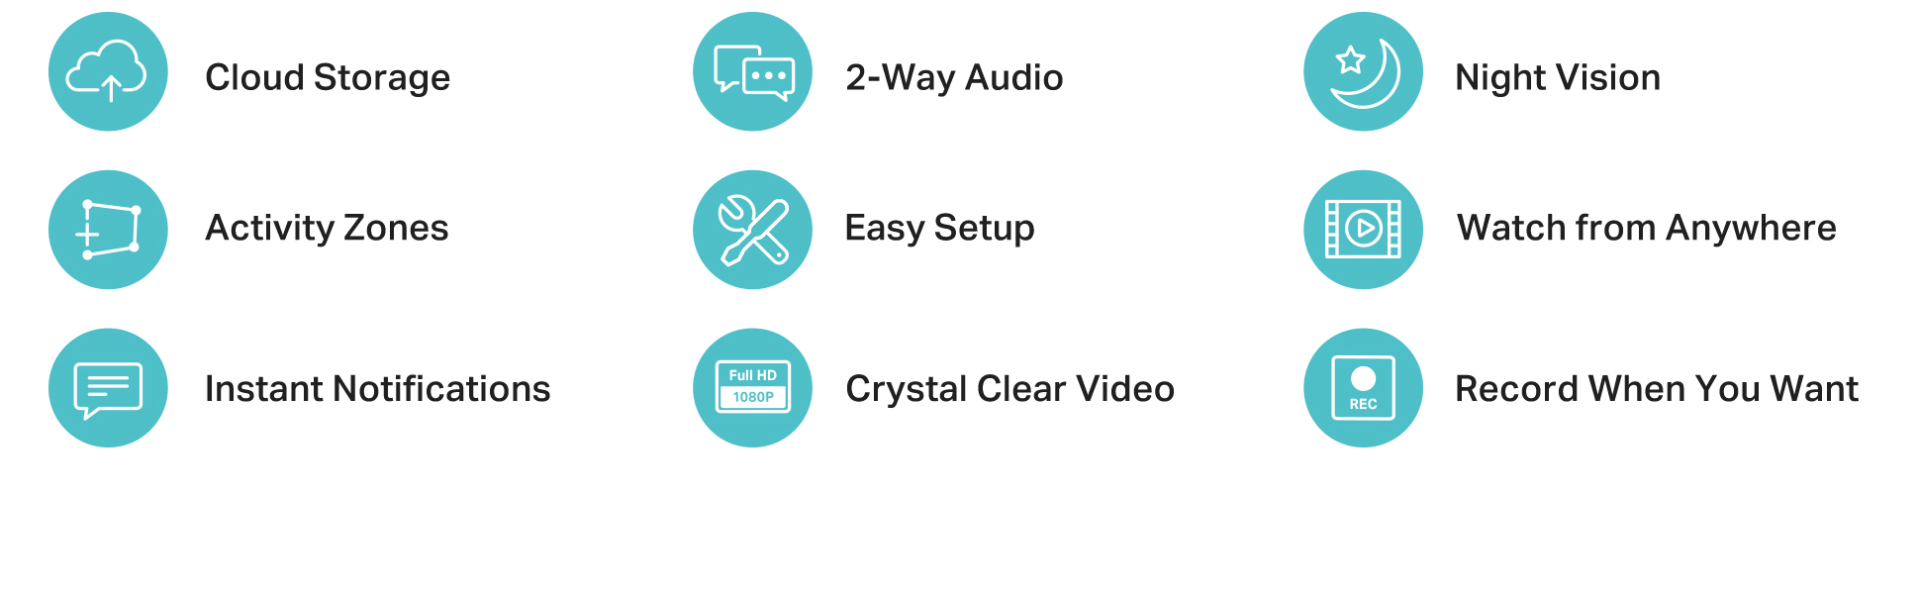 Cloud storage, 2-way audio, night vision, activity zones, easy setup